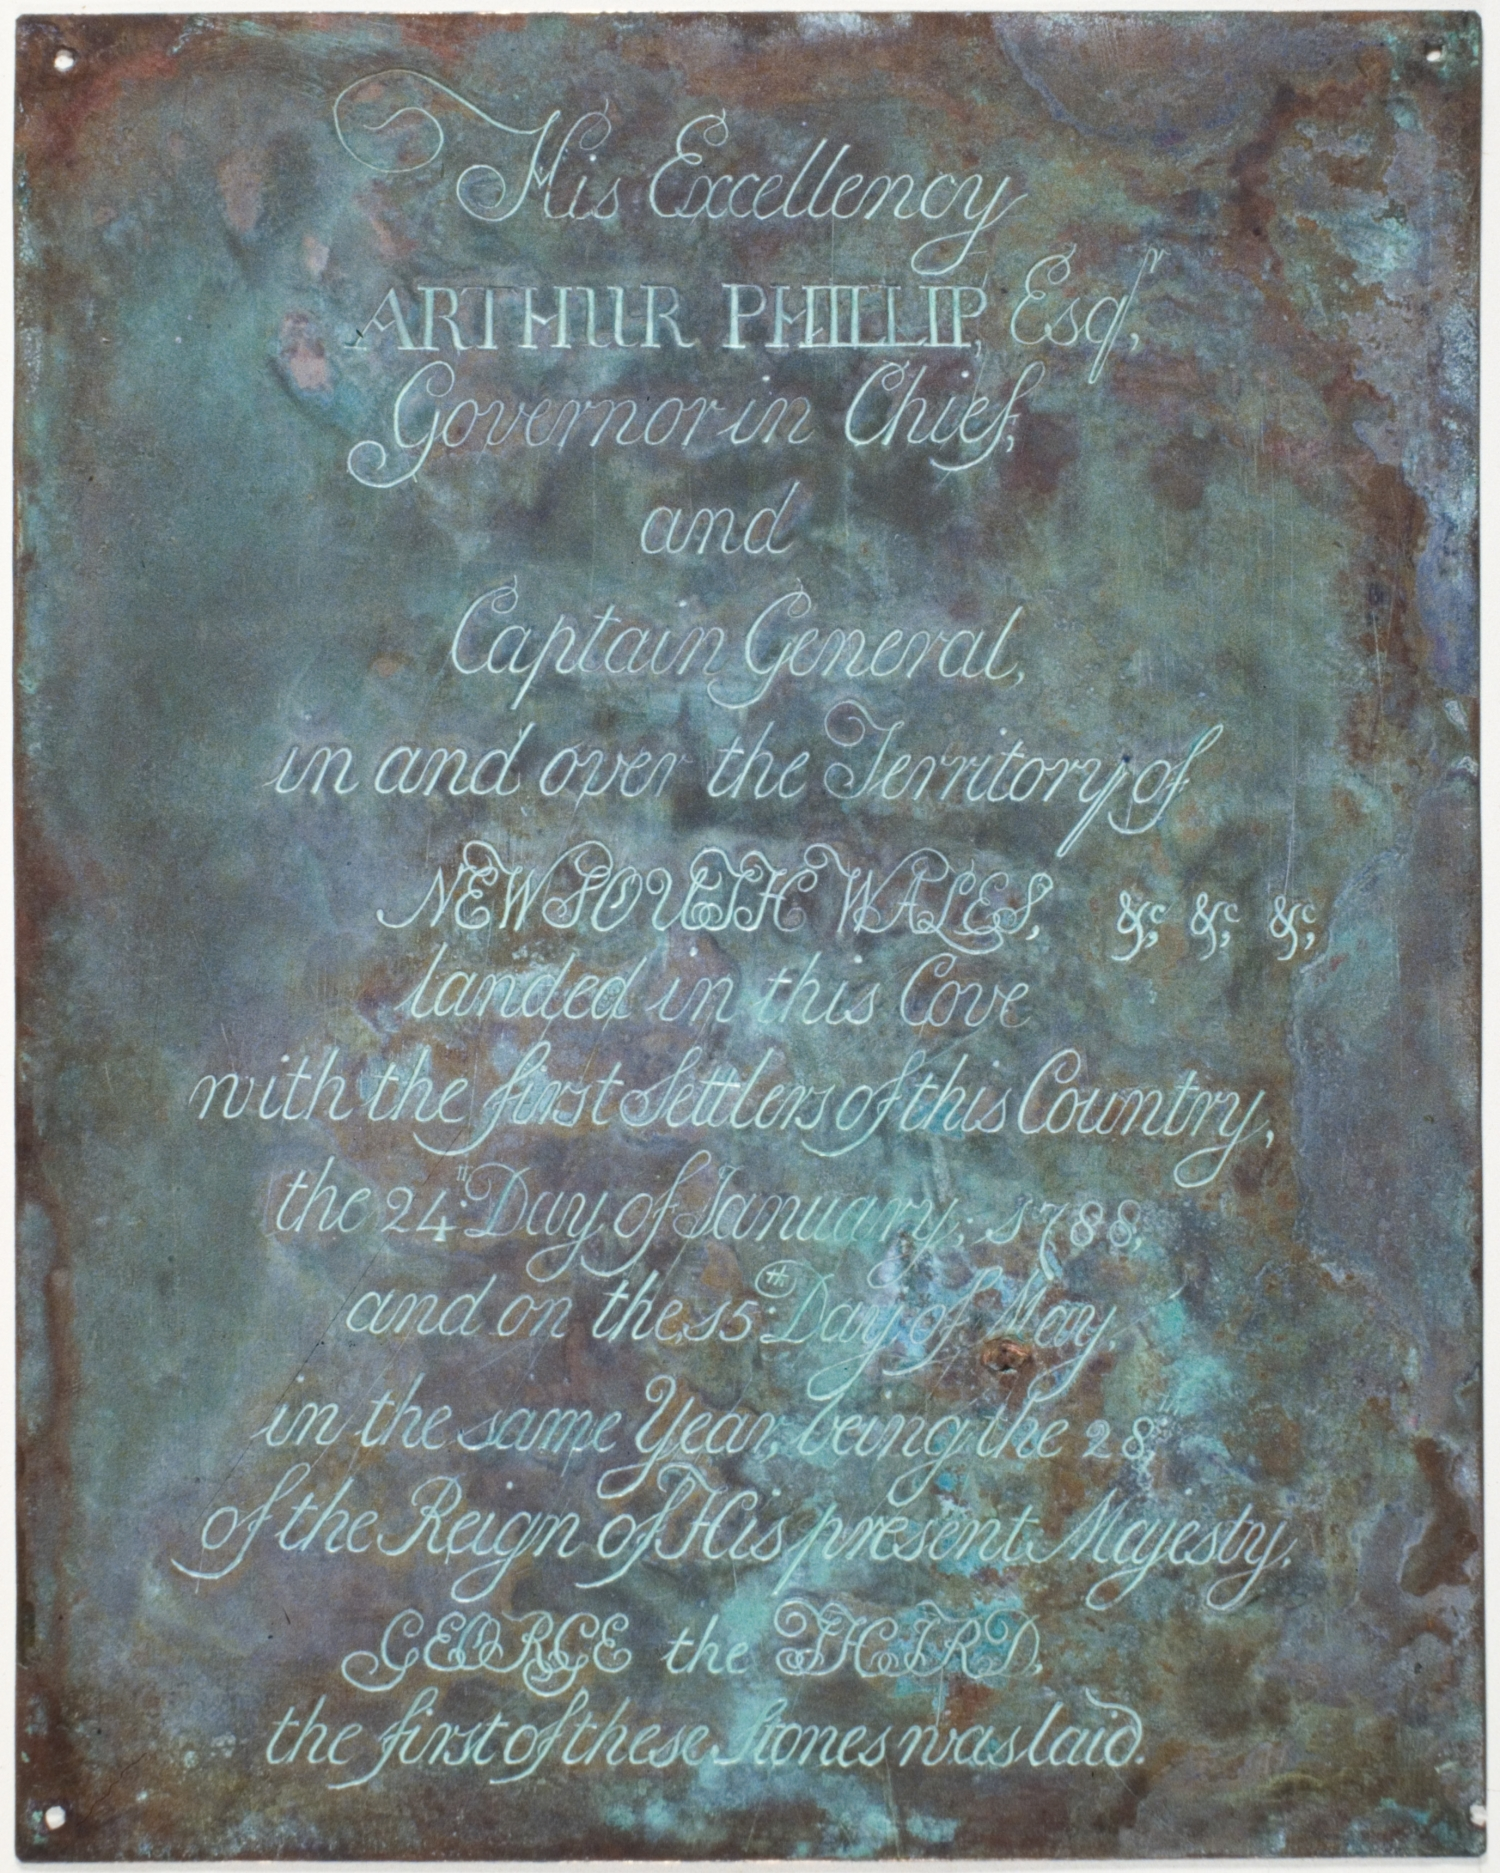 Copper plate with inscription: His Excellency Arthur Phillip Esq. Governor in Chief and Captain General in and over the Territory of  New South Wales,&c, &c landed in this Cove with the first Settlers of this Country, the 24th Day of January 1788;...